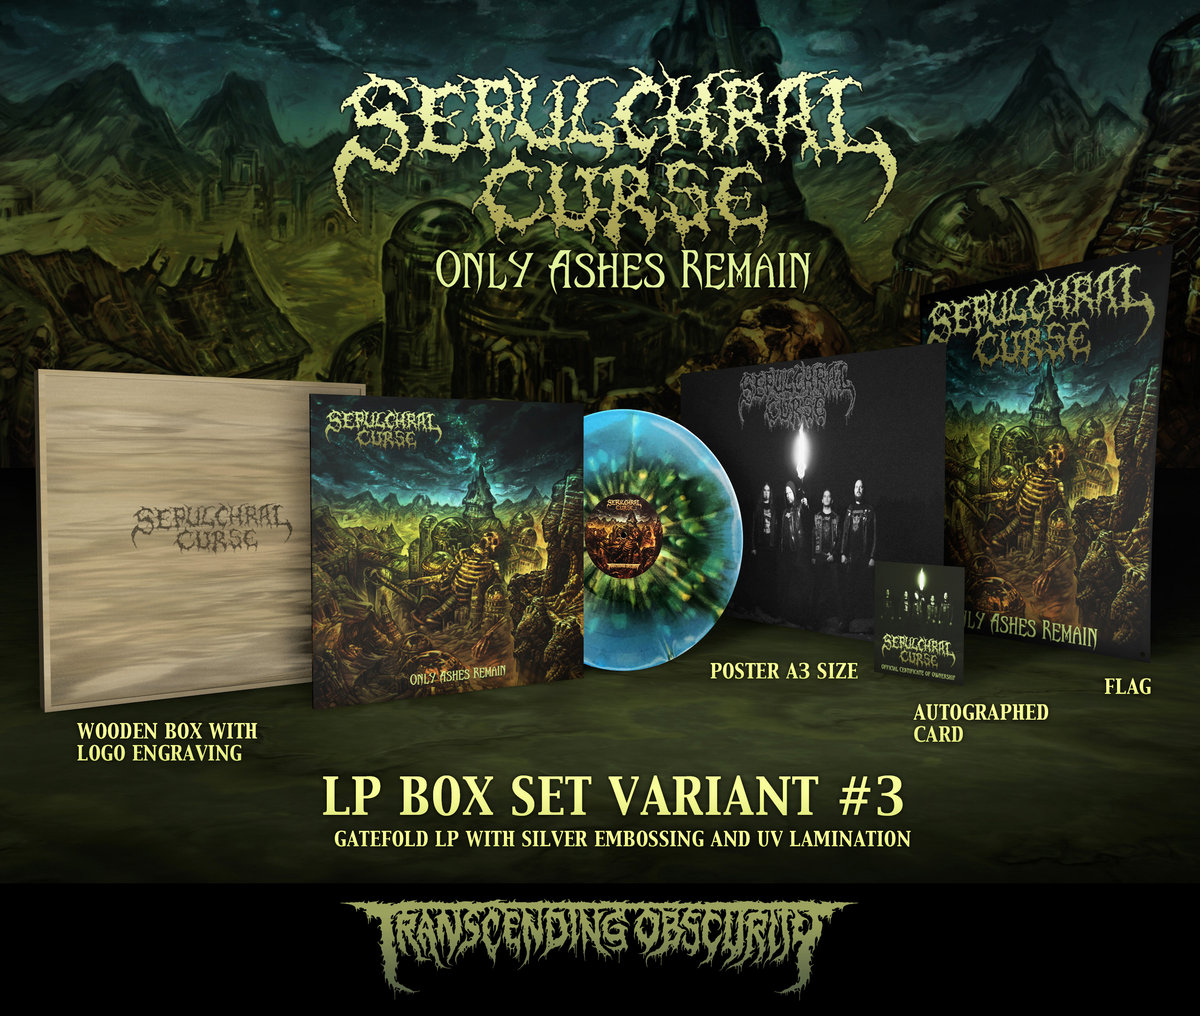 SEPULCHRAL CURSE Wooden LP Box Set with Logo Engraving (Limited to 20)